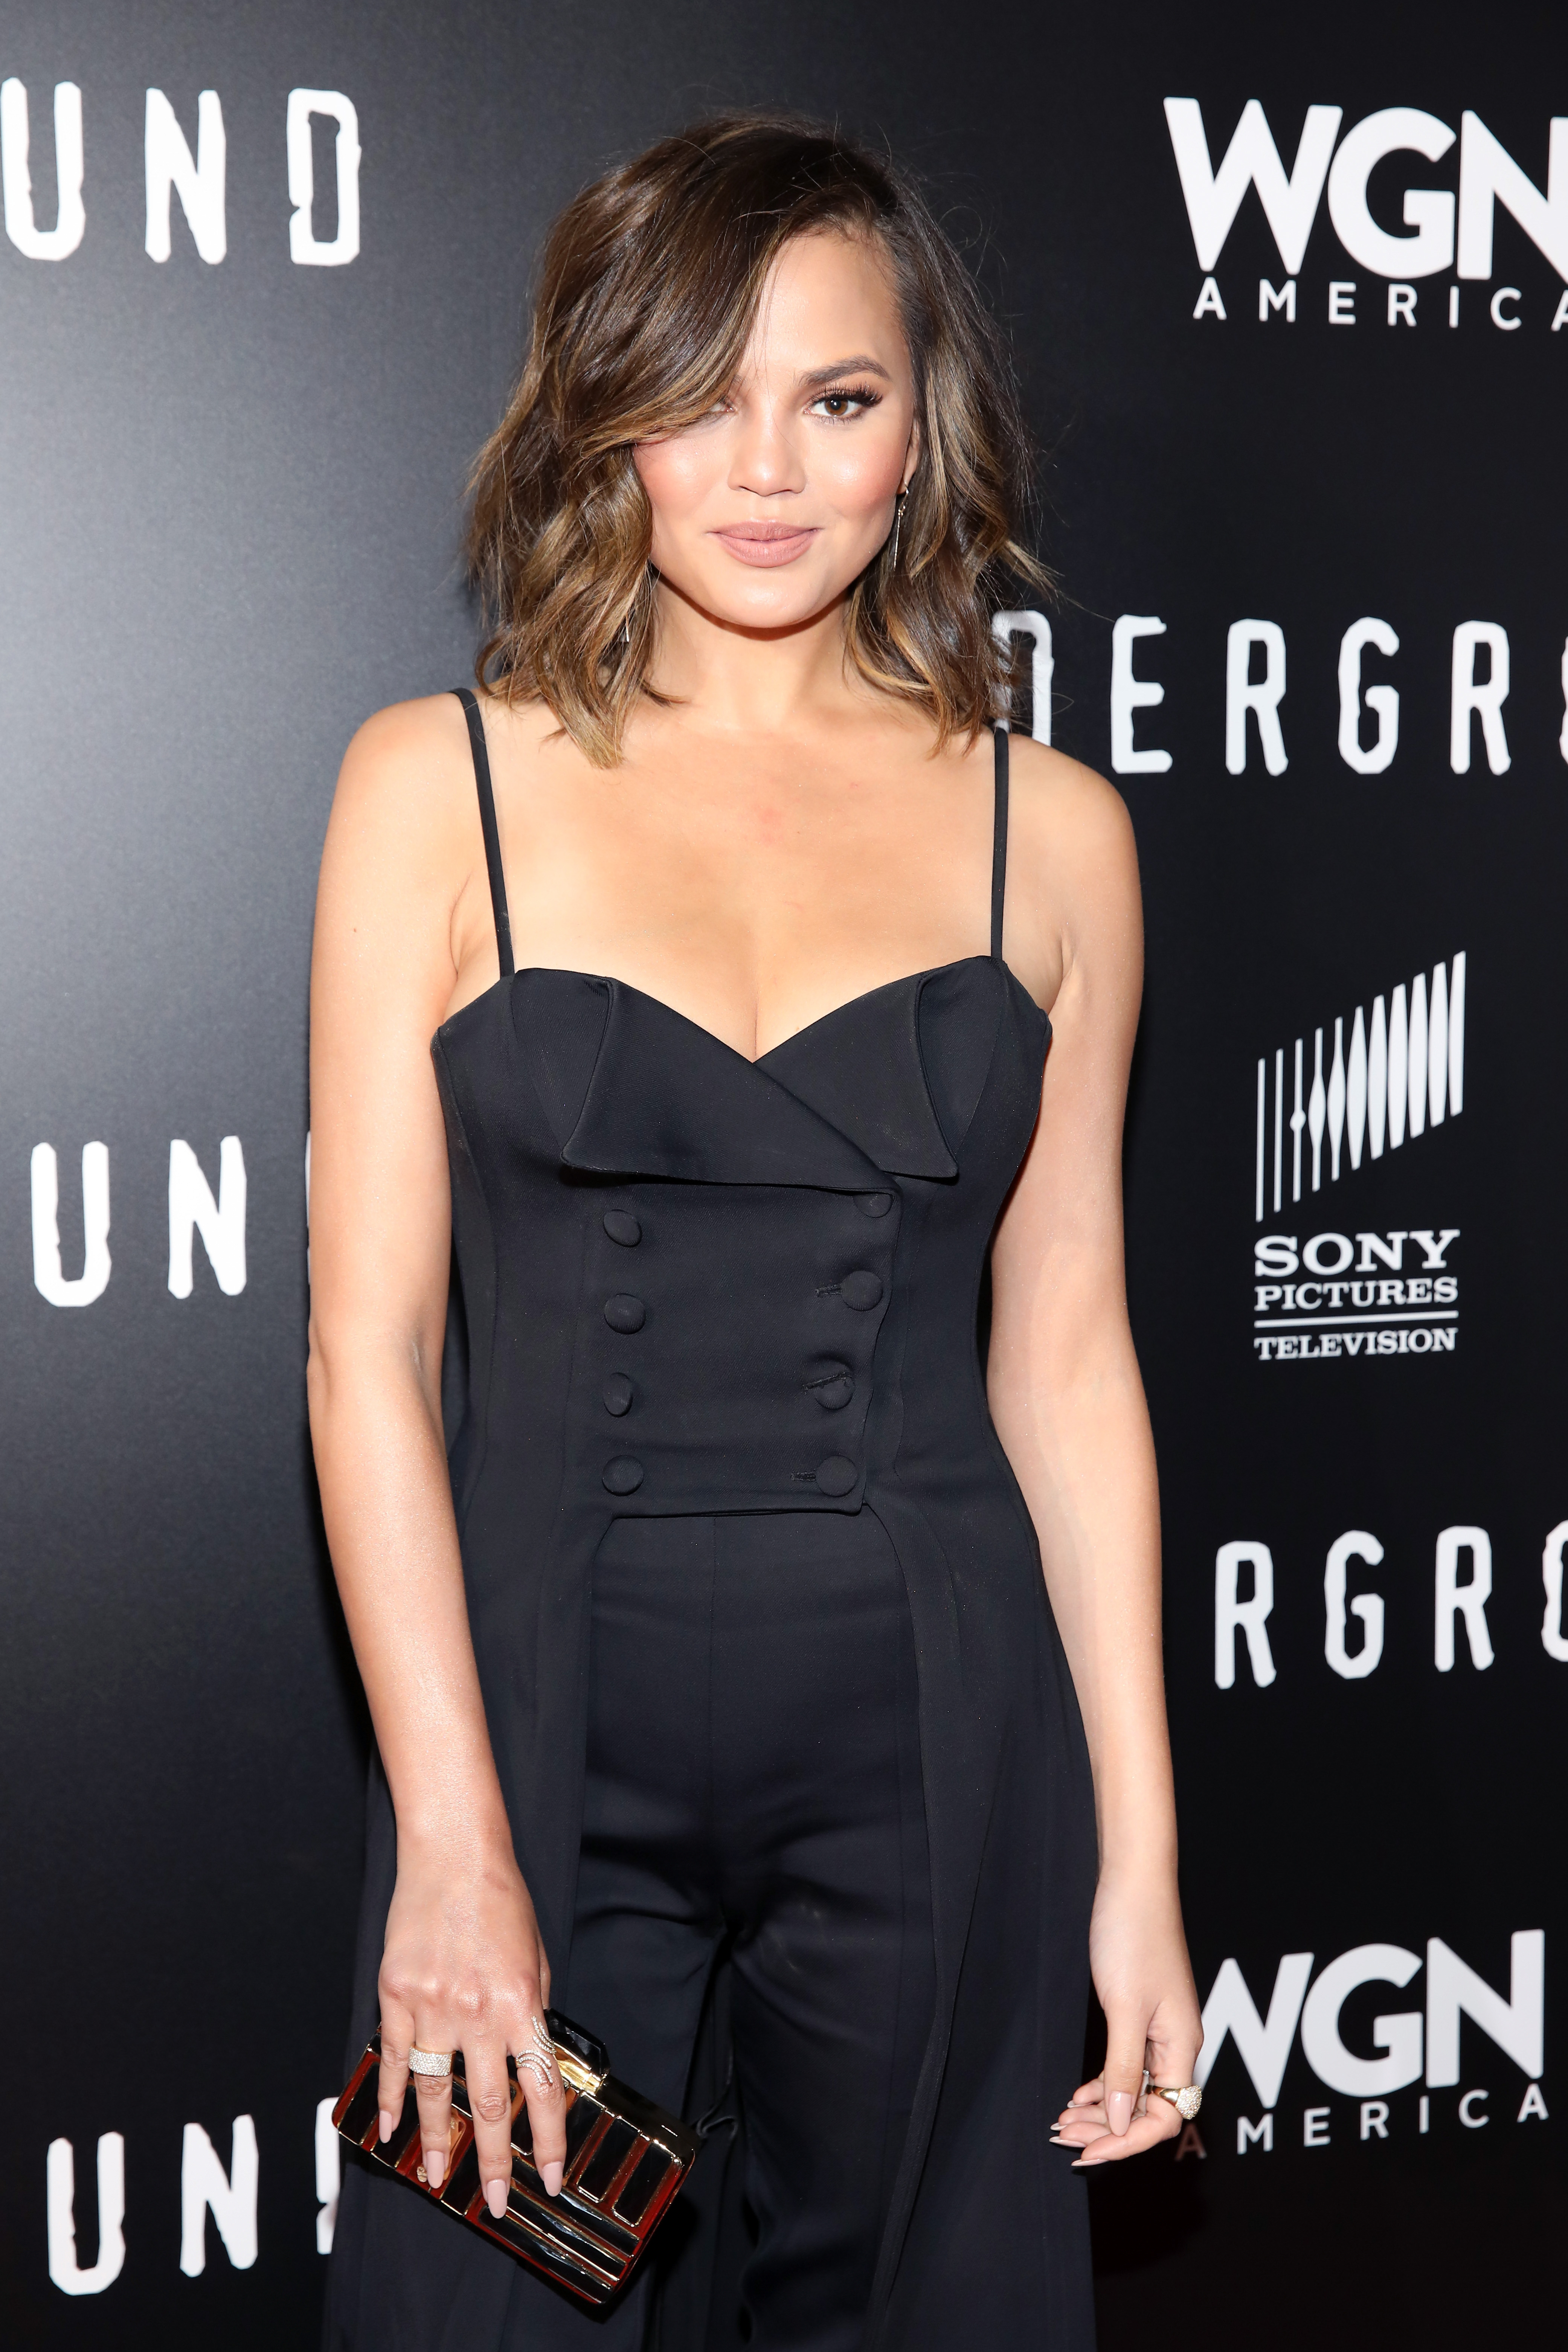 """<p><a href=""""http://style.nine.com.au/chrissy-teigen"""" target=""""_blank"""" draggable=""""false"""">Model Chrissy Teigen </a>is not one to sugarcoat any part of her life on social media.</p> <p> The exuberant wife of singer John Legend has shared pictures of stretch marks, posted videos of<a href=""""http://style.nine.com.au/2017/04/26/10/24/style_chrissy-teigens-hair-extensions-nightmare"""" target=""""_blank"""" draggable=""""false""""> hair extension dramas</a>, tweeted about her infertility and revealed that <a href=""""http://style.nine.com.au/2017/08/15/09/31/style_chrissy-teigen-beauty-secrets"""" target=""""_blank"""" draggable=""""false"""">she has broken down over her body image.</a></p> <p> The mother-of-one's unfiltered attitude stems from her belief that more women need to be themselves on social media and not rely on apps that focus on retouching and airbrushing an image.</p> <p>""""I will say that everyone has a stretch mark. Every time I see that other stretch mark, I'm like, """"Girl, yes!"""" It makes me feel better, and if more of us did that kind of s**t, how many people would feel better?"""" Chrissy said at the Beautycon beauty conference.</p> <p> The <em>Sports Illustrated</em> covergirl isn't the celebrity to keep it real. </p> <p>Lady Gaga, Zendaya and Gisele Bundchen are just some of the other celebrities who have also said no to photoshop and yes to natural beauty.</p> <p> Click through to see the celebrities who have taken a stance against digital manipulation. </p>"""